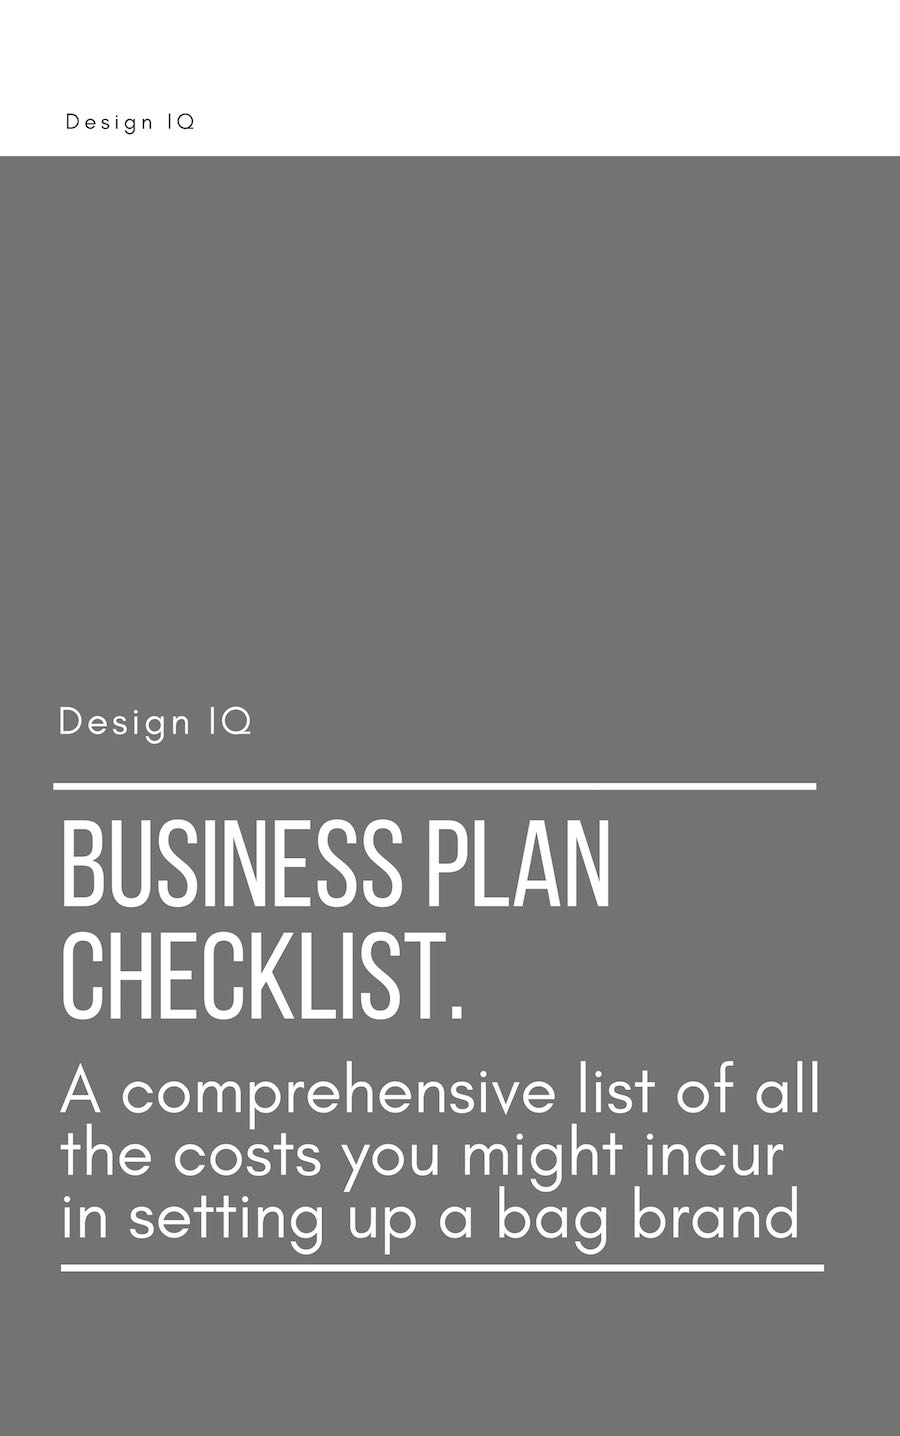 Graphic offering download of bag brand business plan checklist